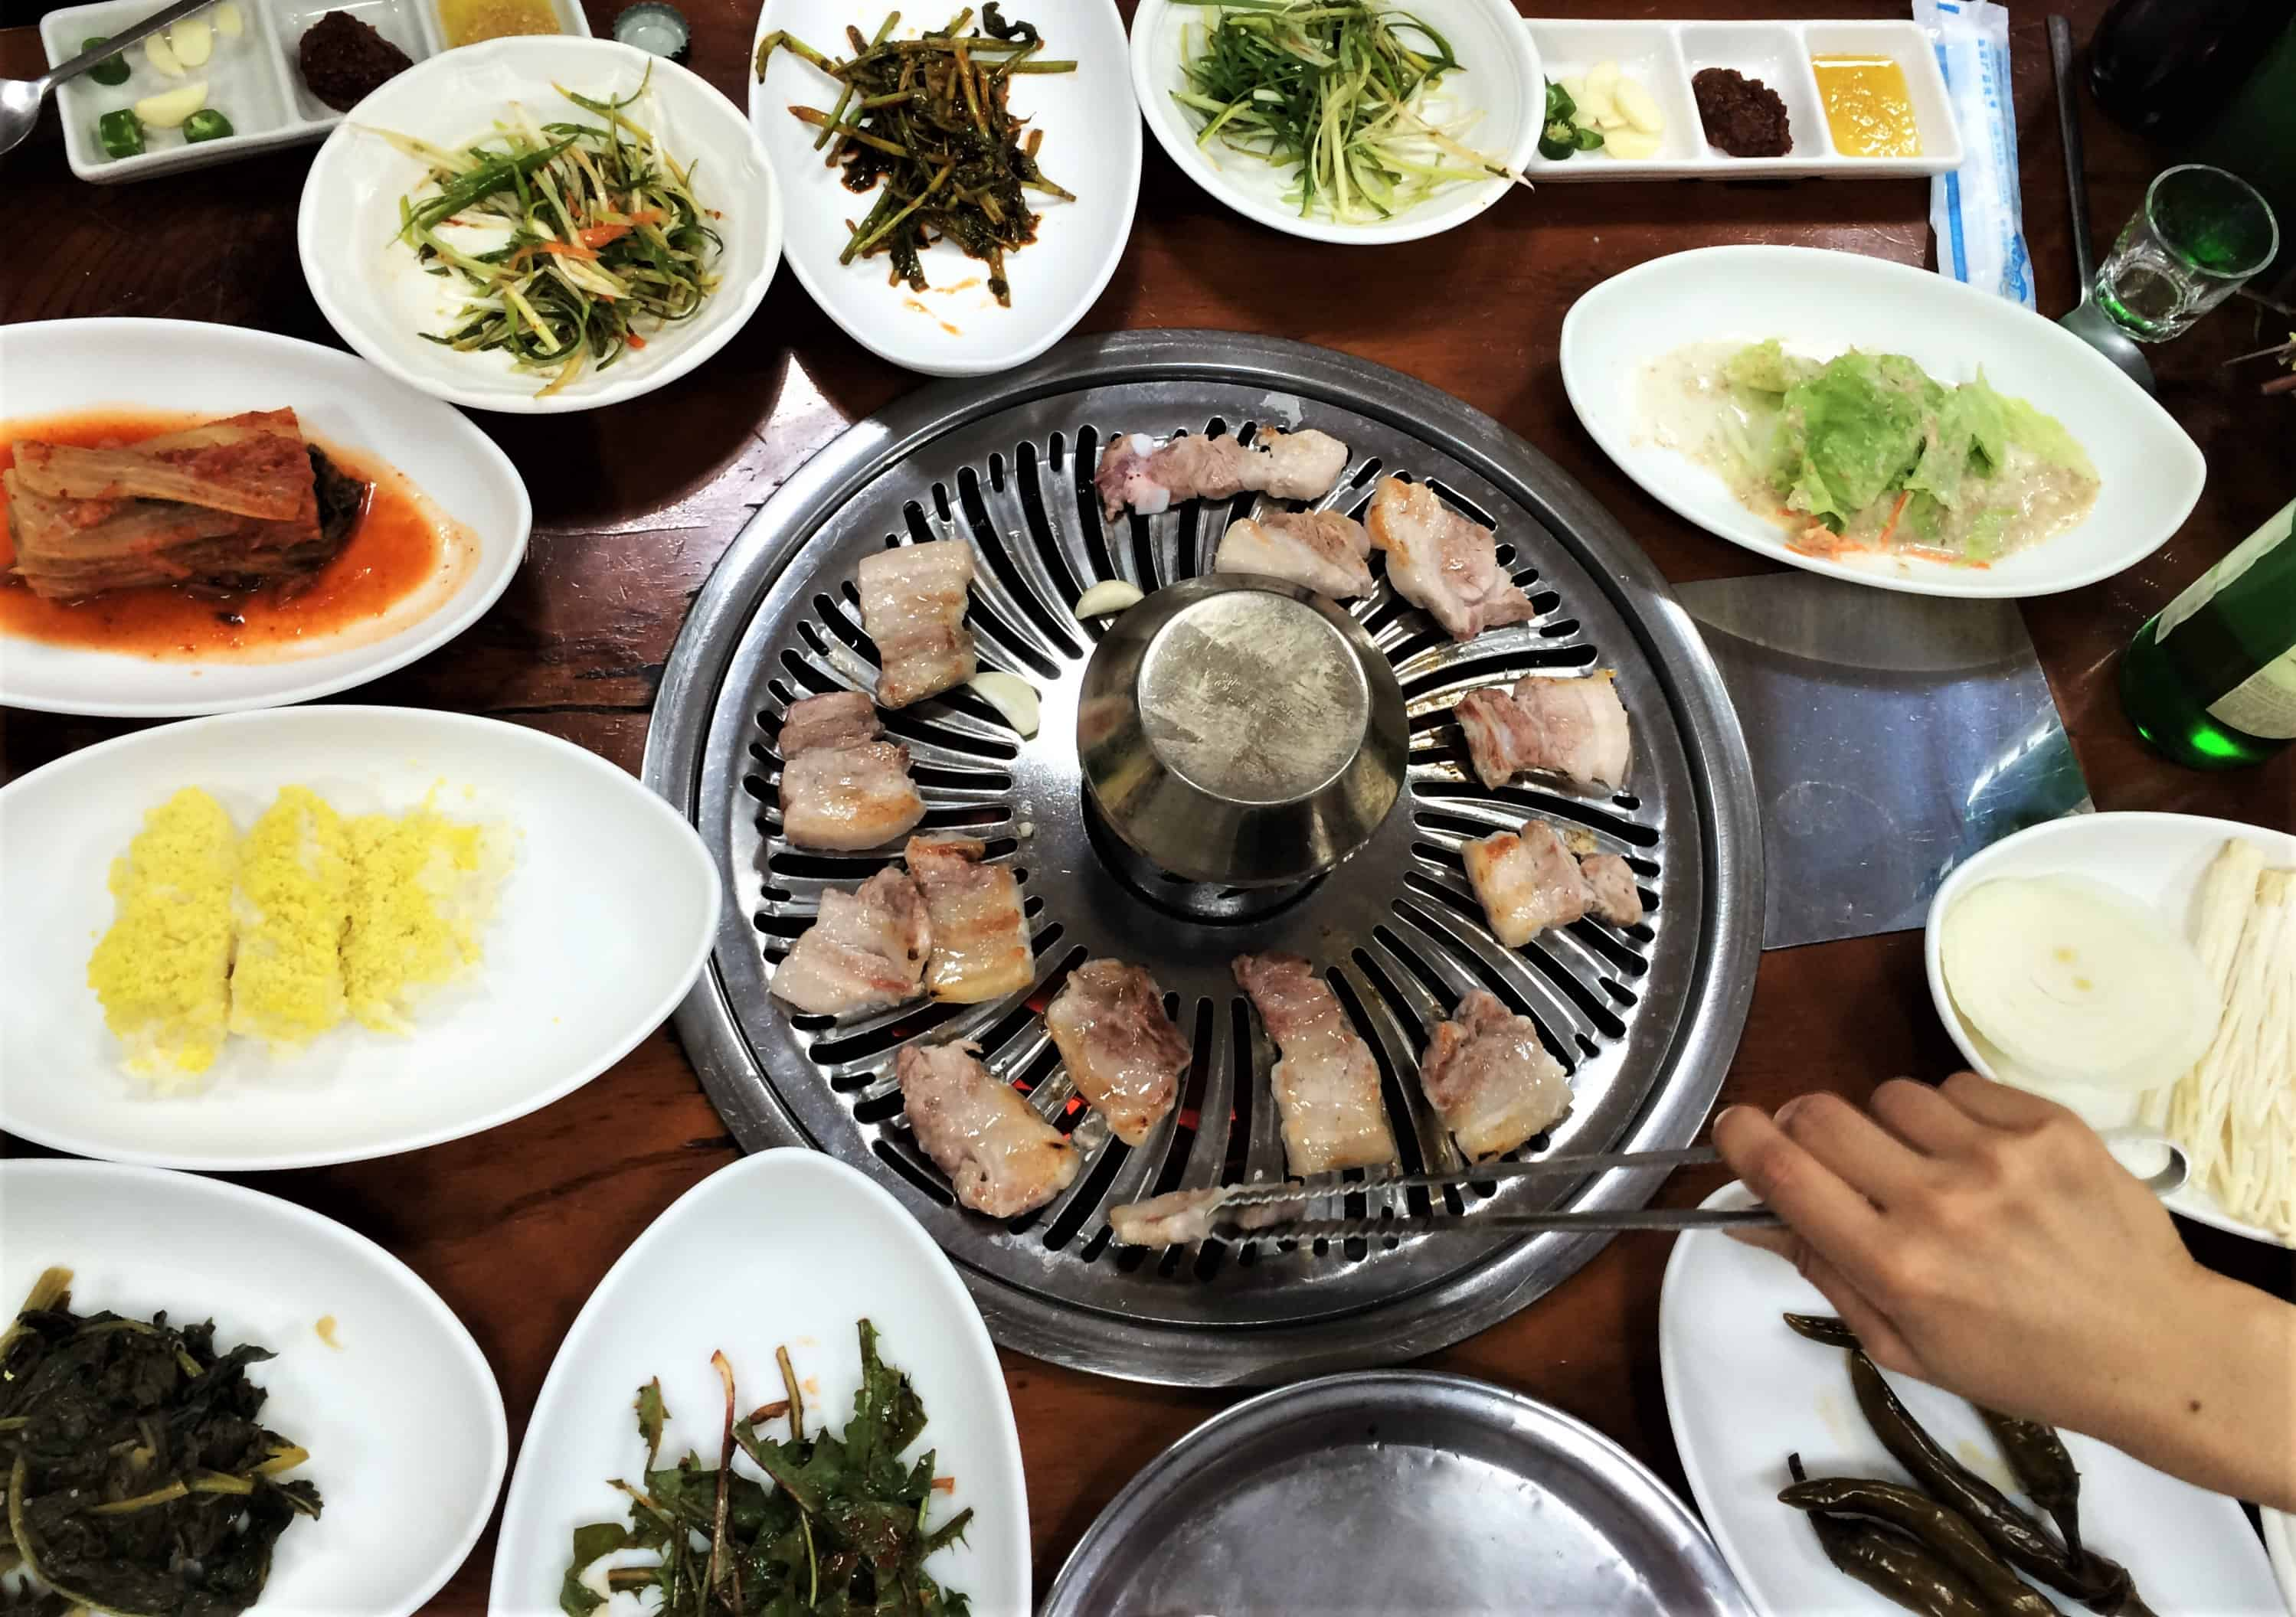 Seoul food guide - where to eat in the South Korean capital